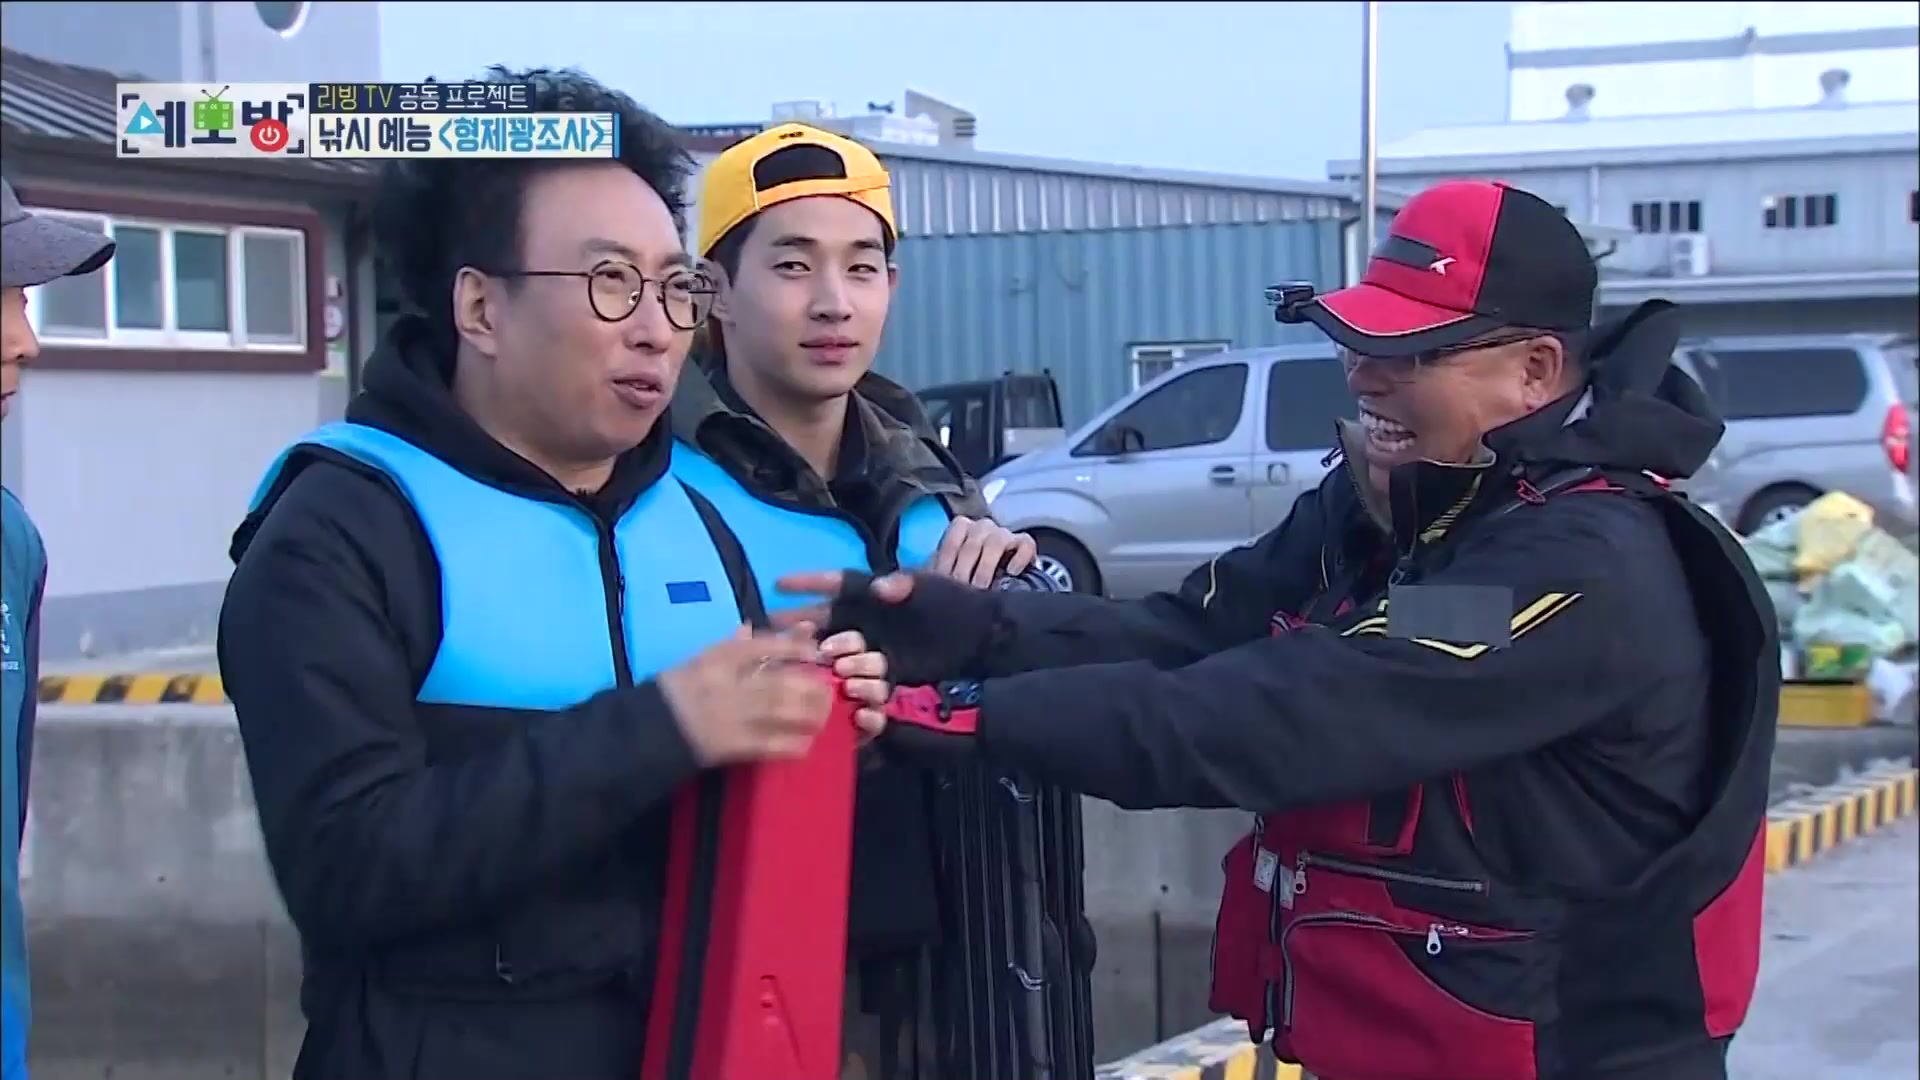 All Broadcasts of the World Episode 3